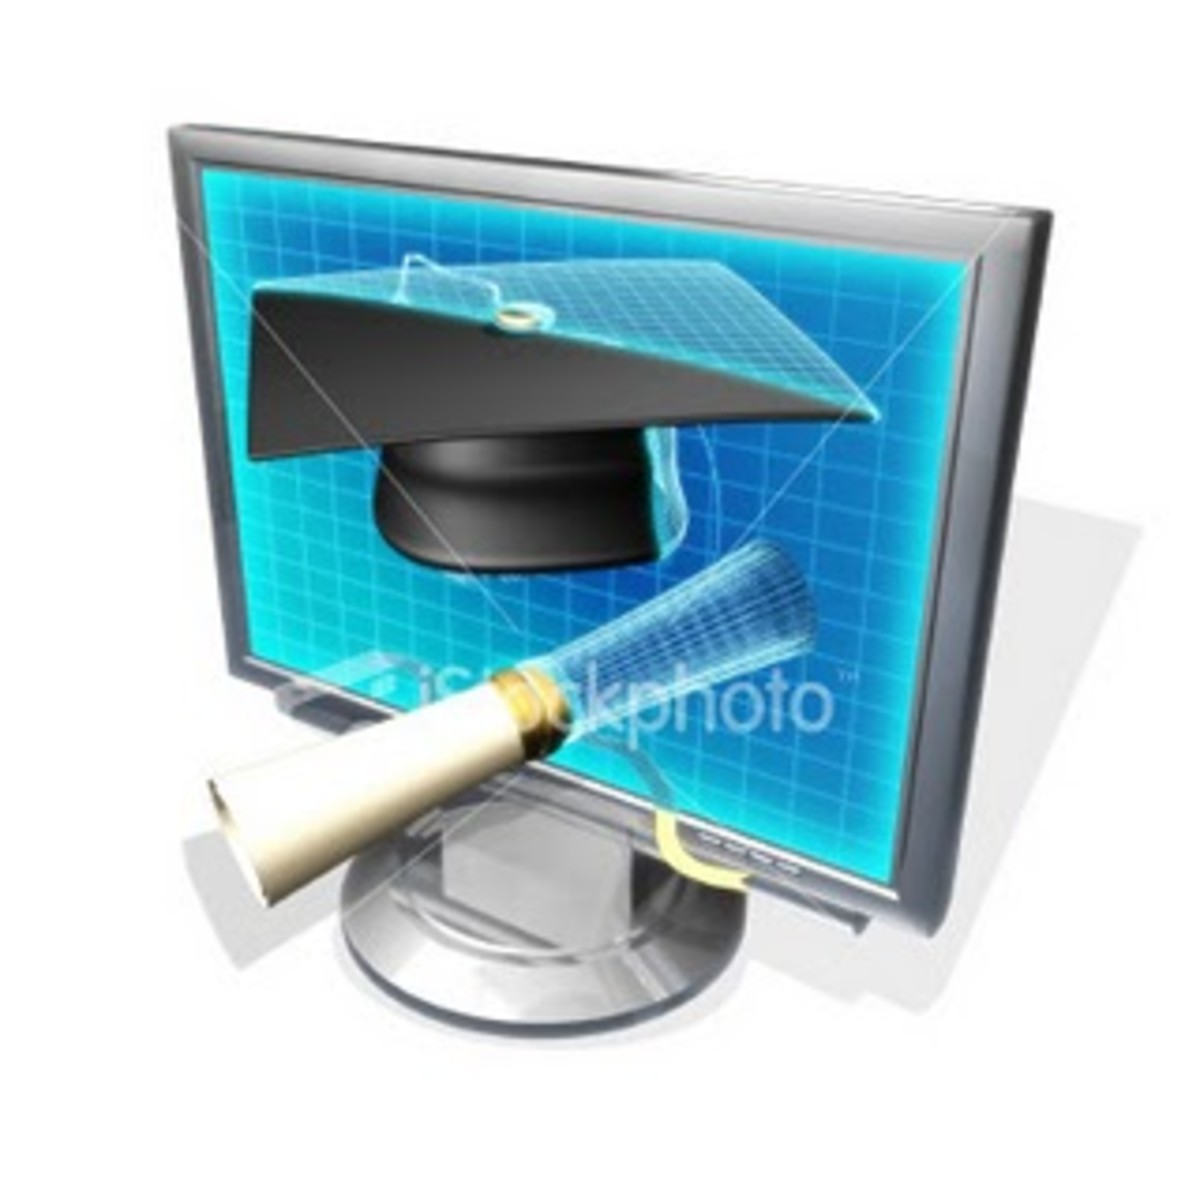 Online Education has now become one of the many ways that changing education in the 21st century has morphed into. Online Education Investors make more the $1 million in Scholarships available to those in need.